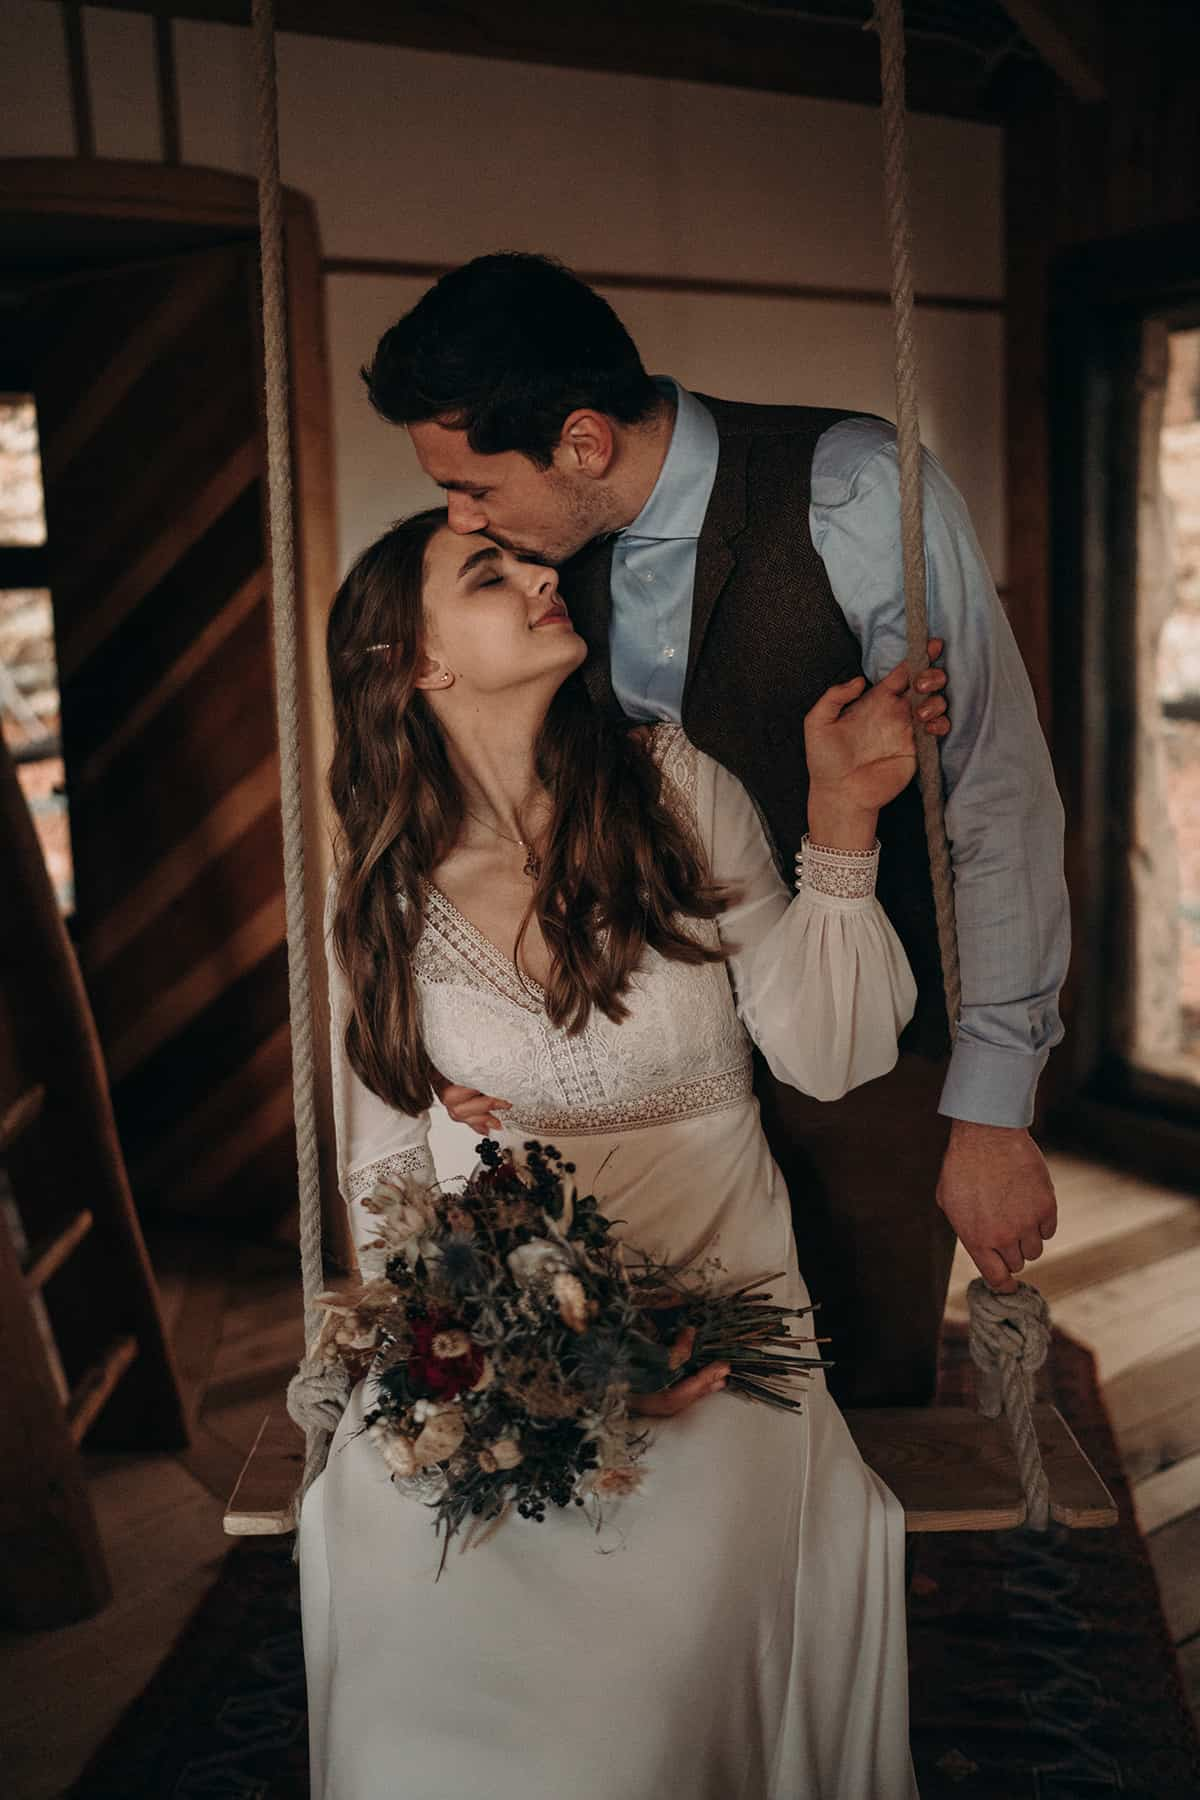 A Stunning And Intimate Elopement In The Woods